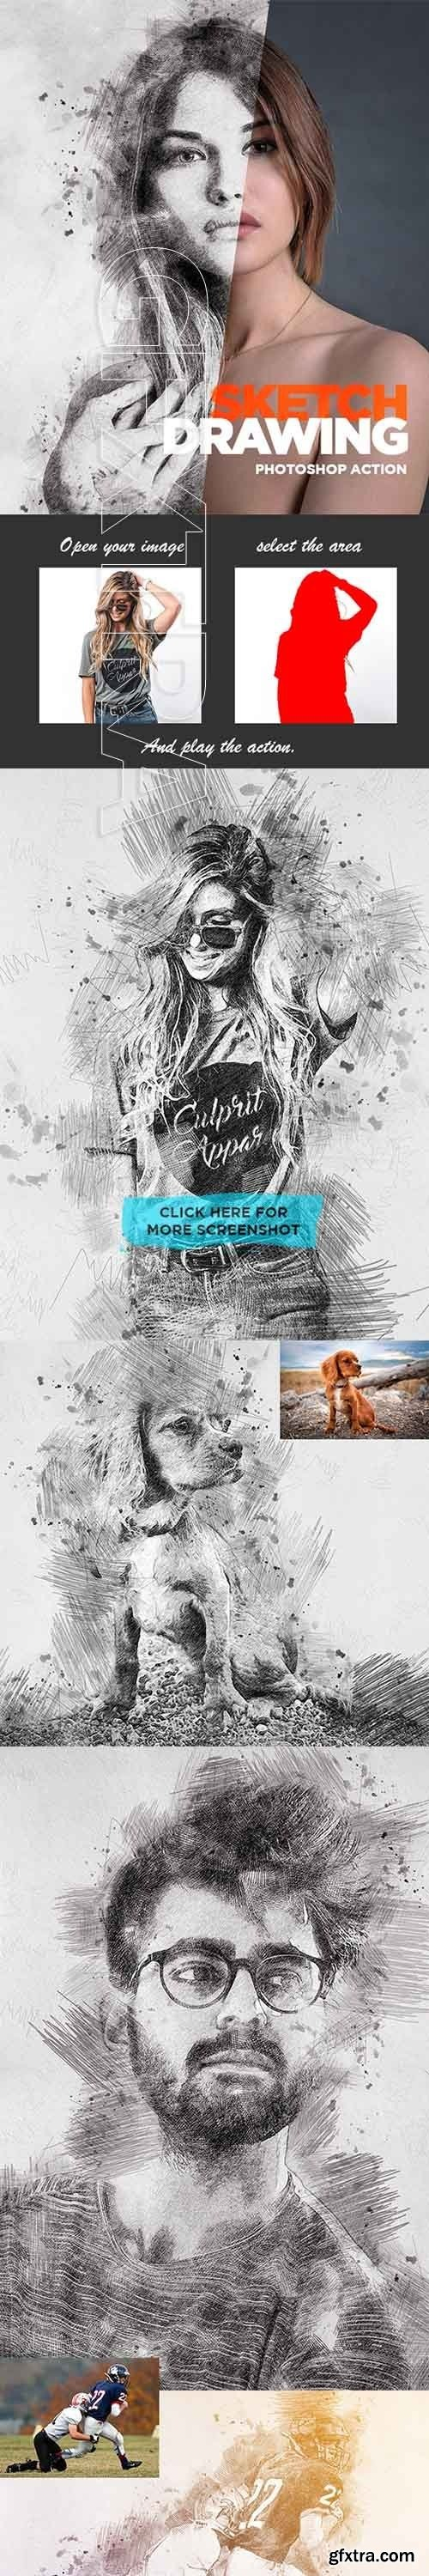 GraphicRiver - Sketch Drawing - Photoshop Action 22588545